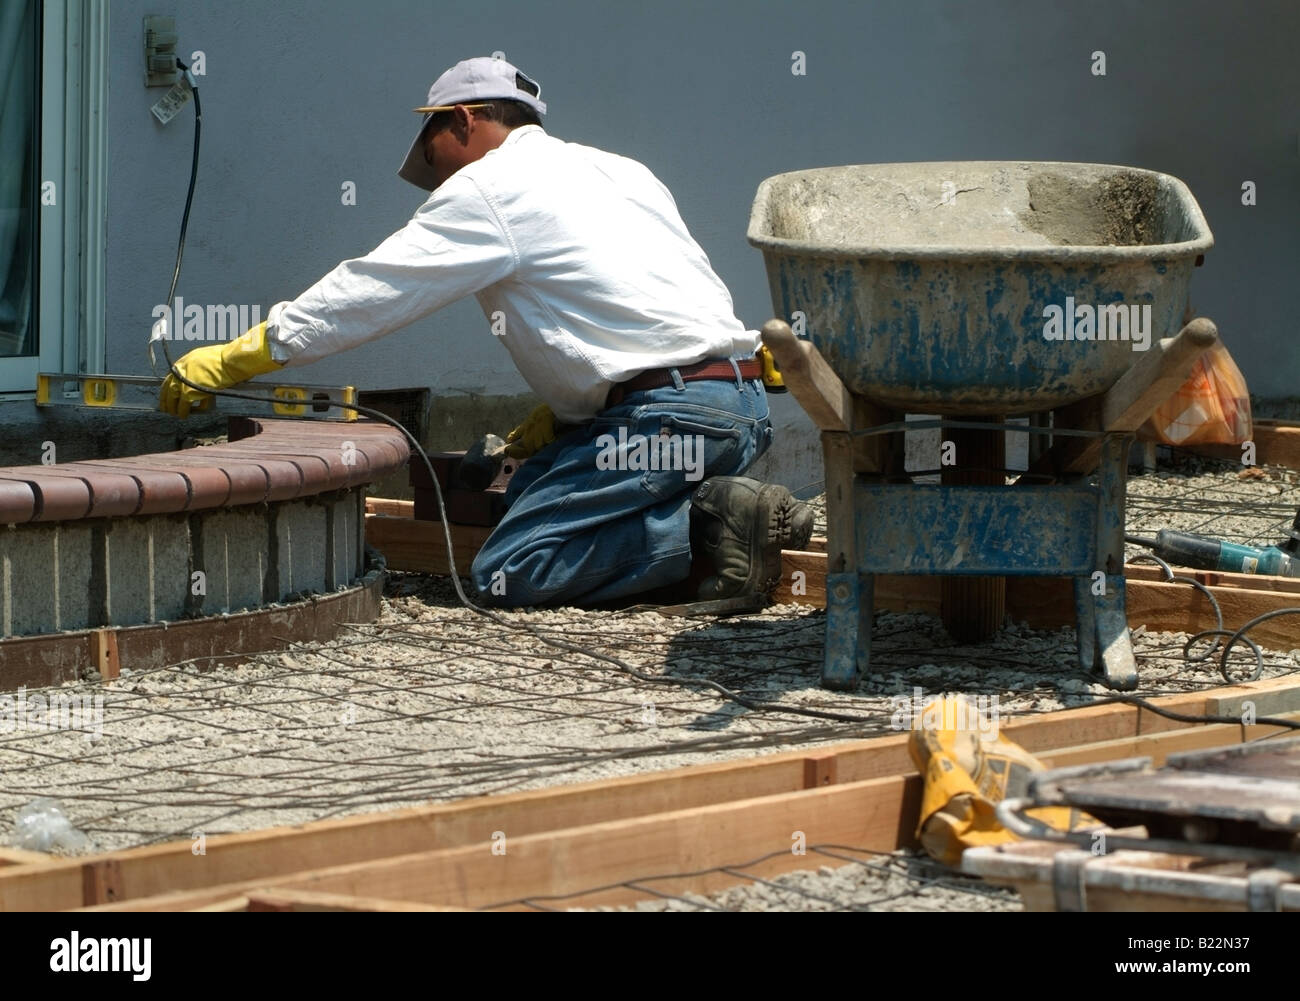 Workman leveling bricks to make a step to a backyard patio in Silicon Valley, California. Stock Photo